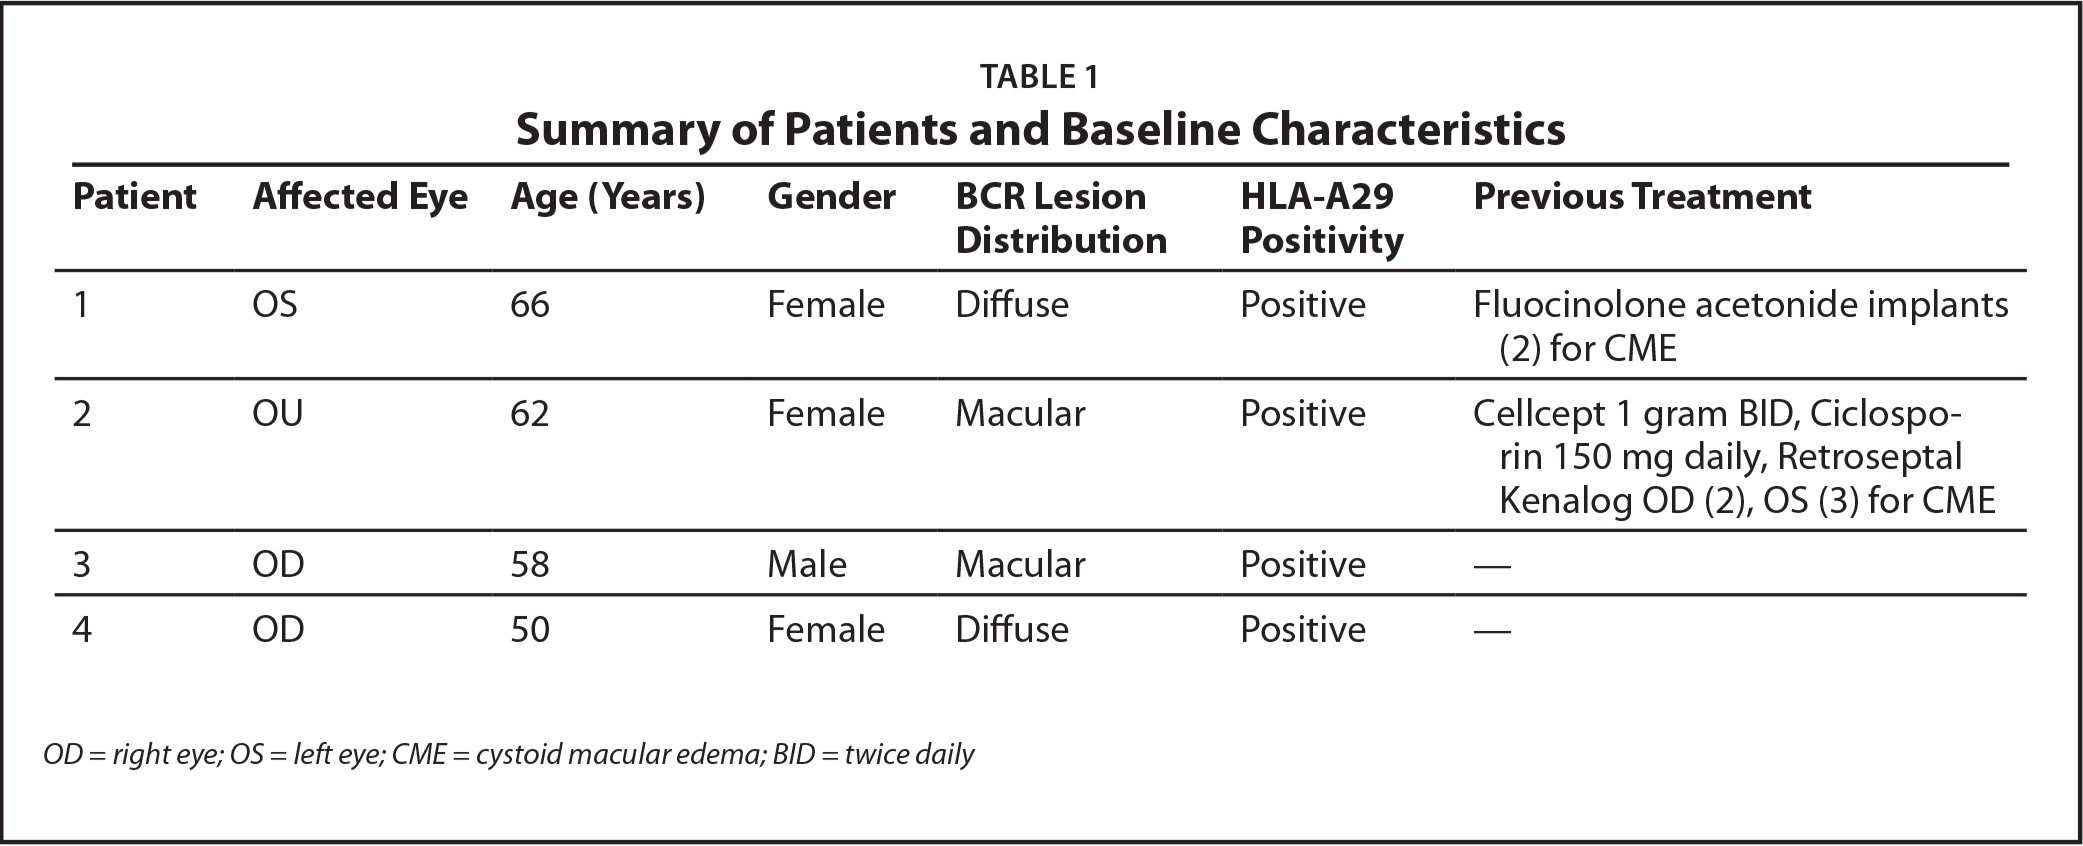 Summary of Patients and Baseline Characteristics